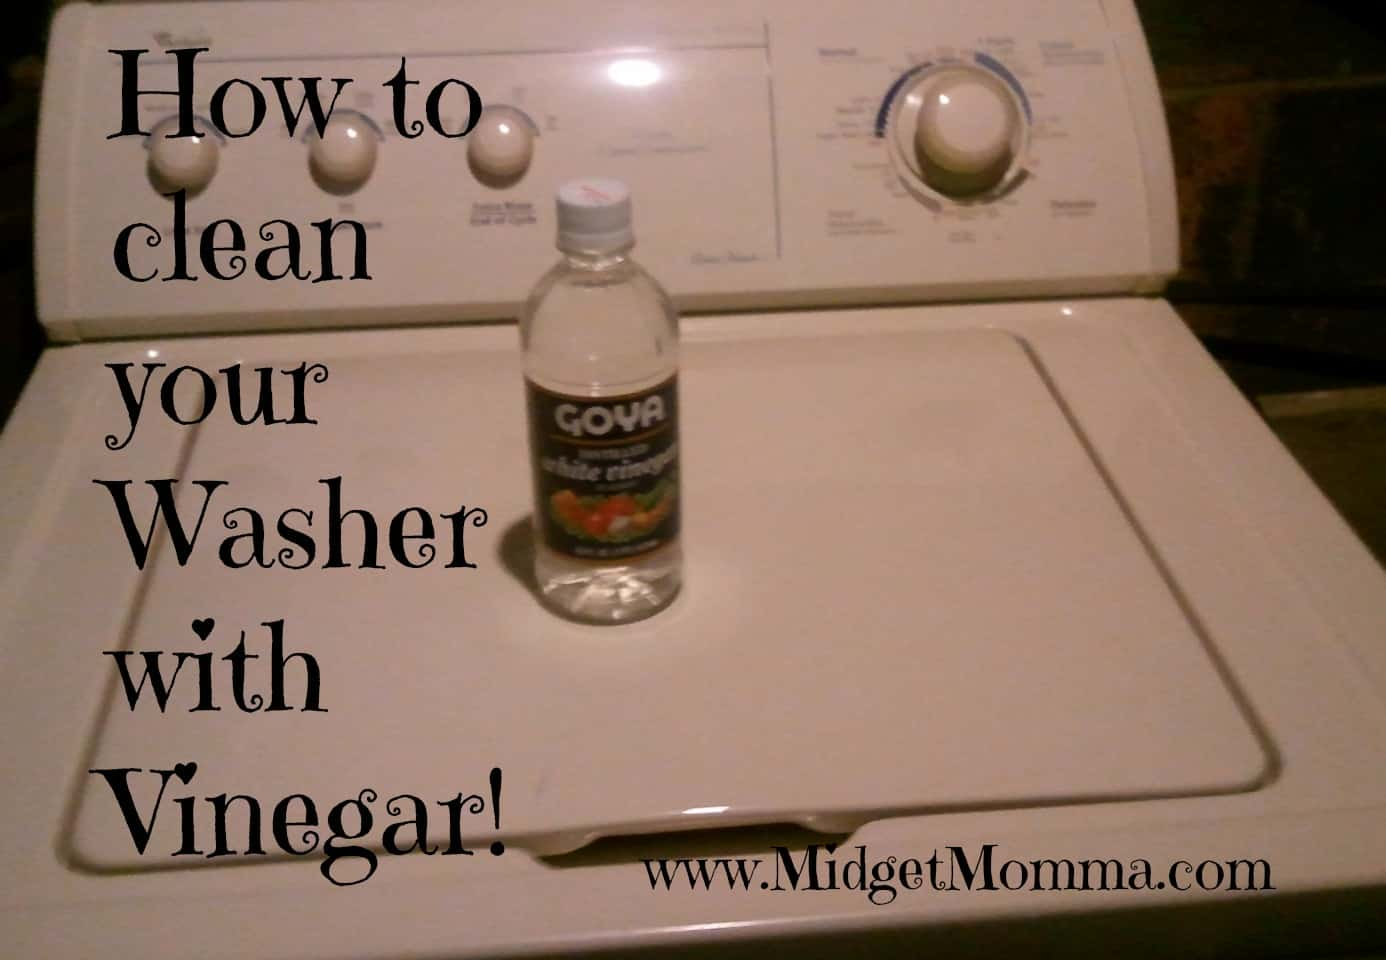 Cleaning Tips: Clean your washer with Vinegar